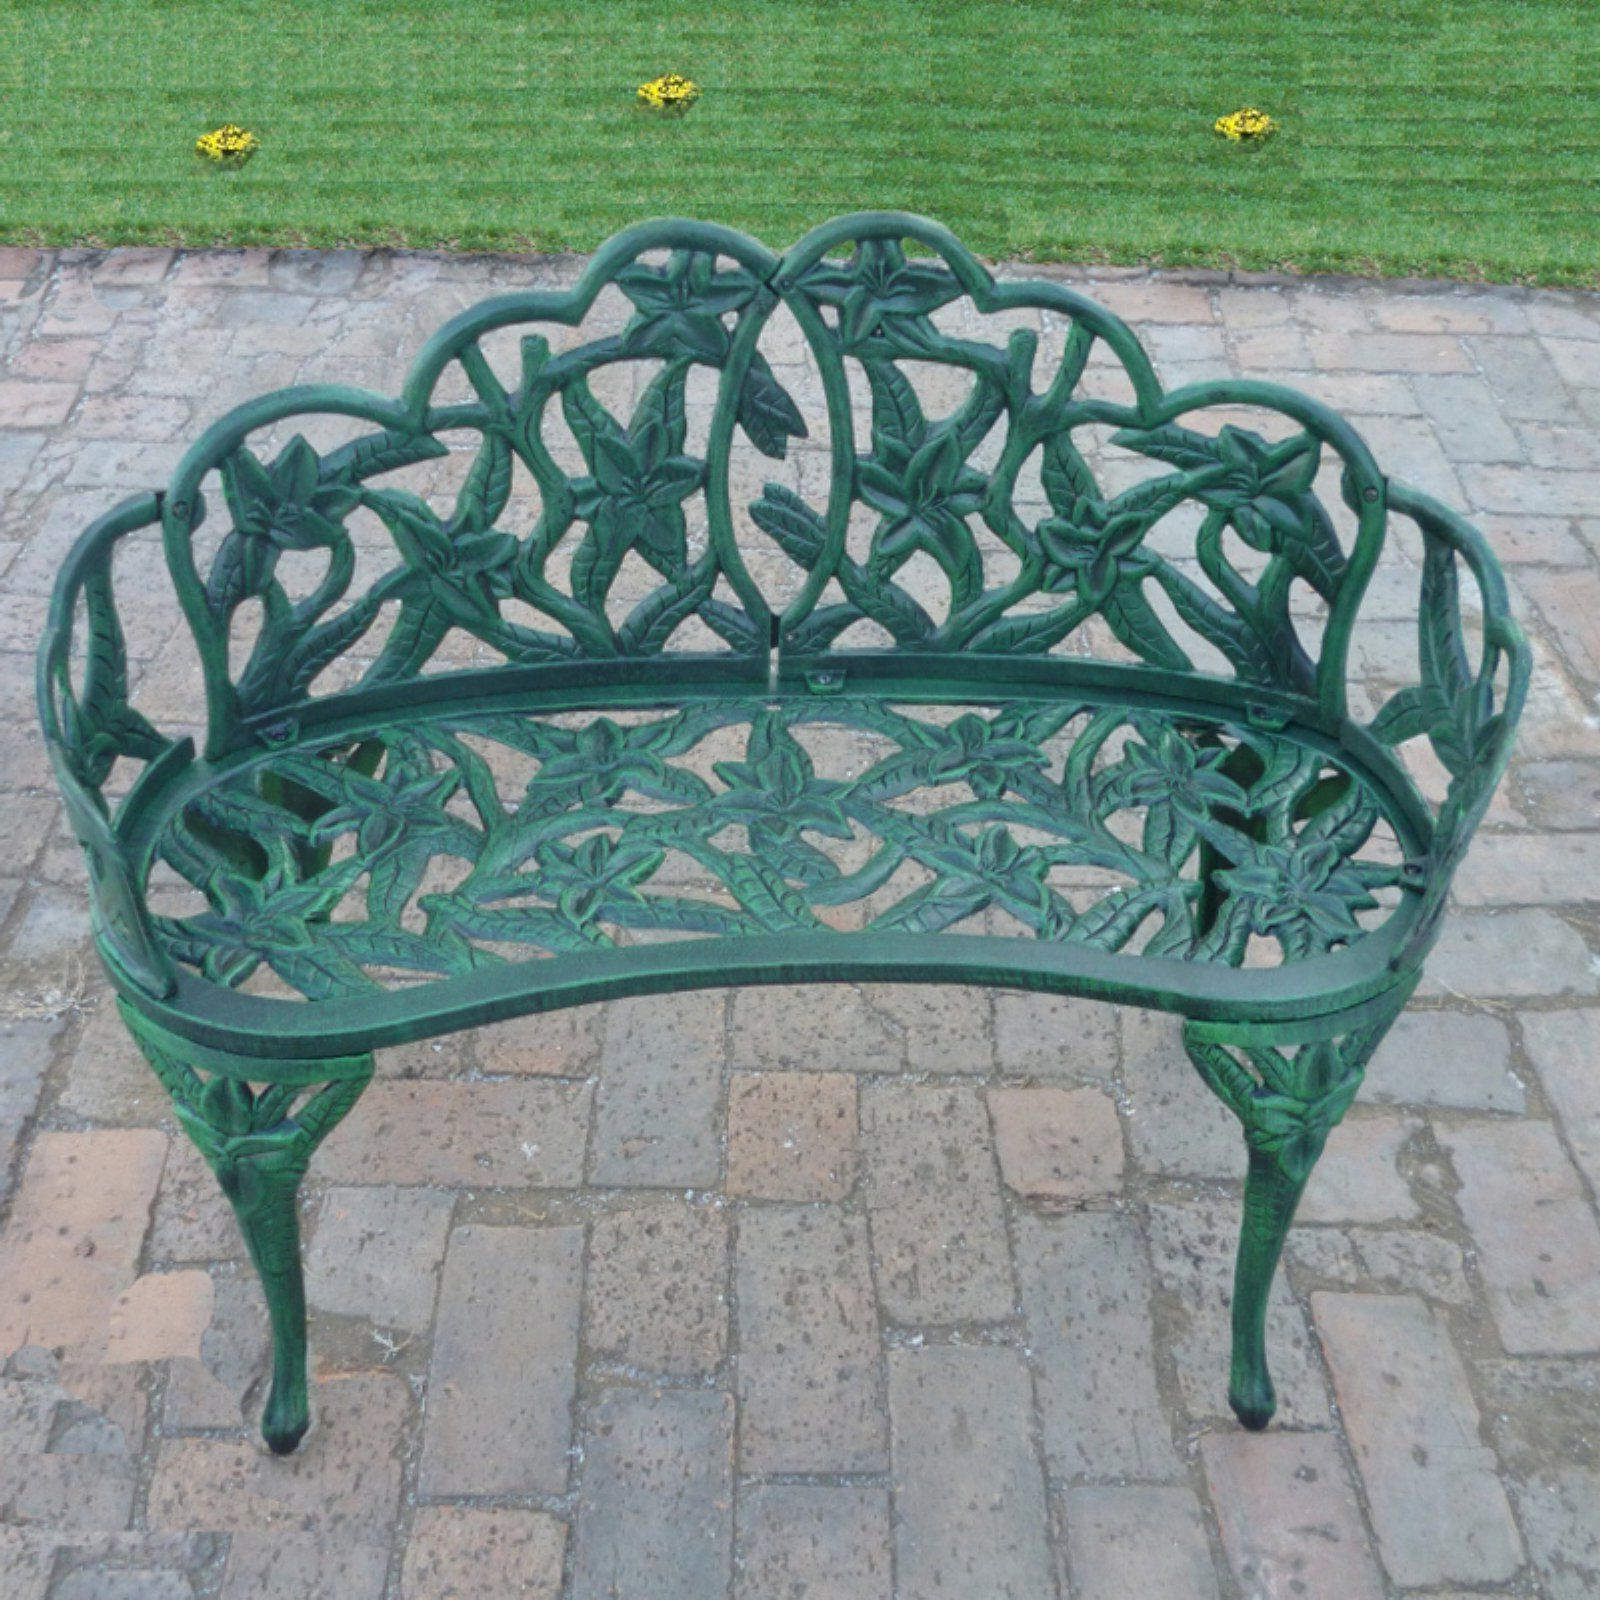 Montezuma Cast Aluminum Garden Benches With Regard To Well Known Pin On Yard Stuff (View 11 of 30)